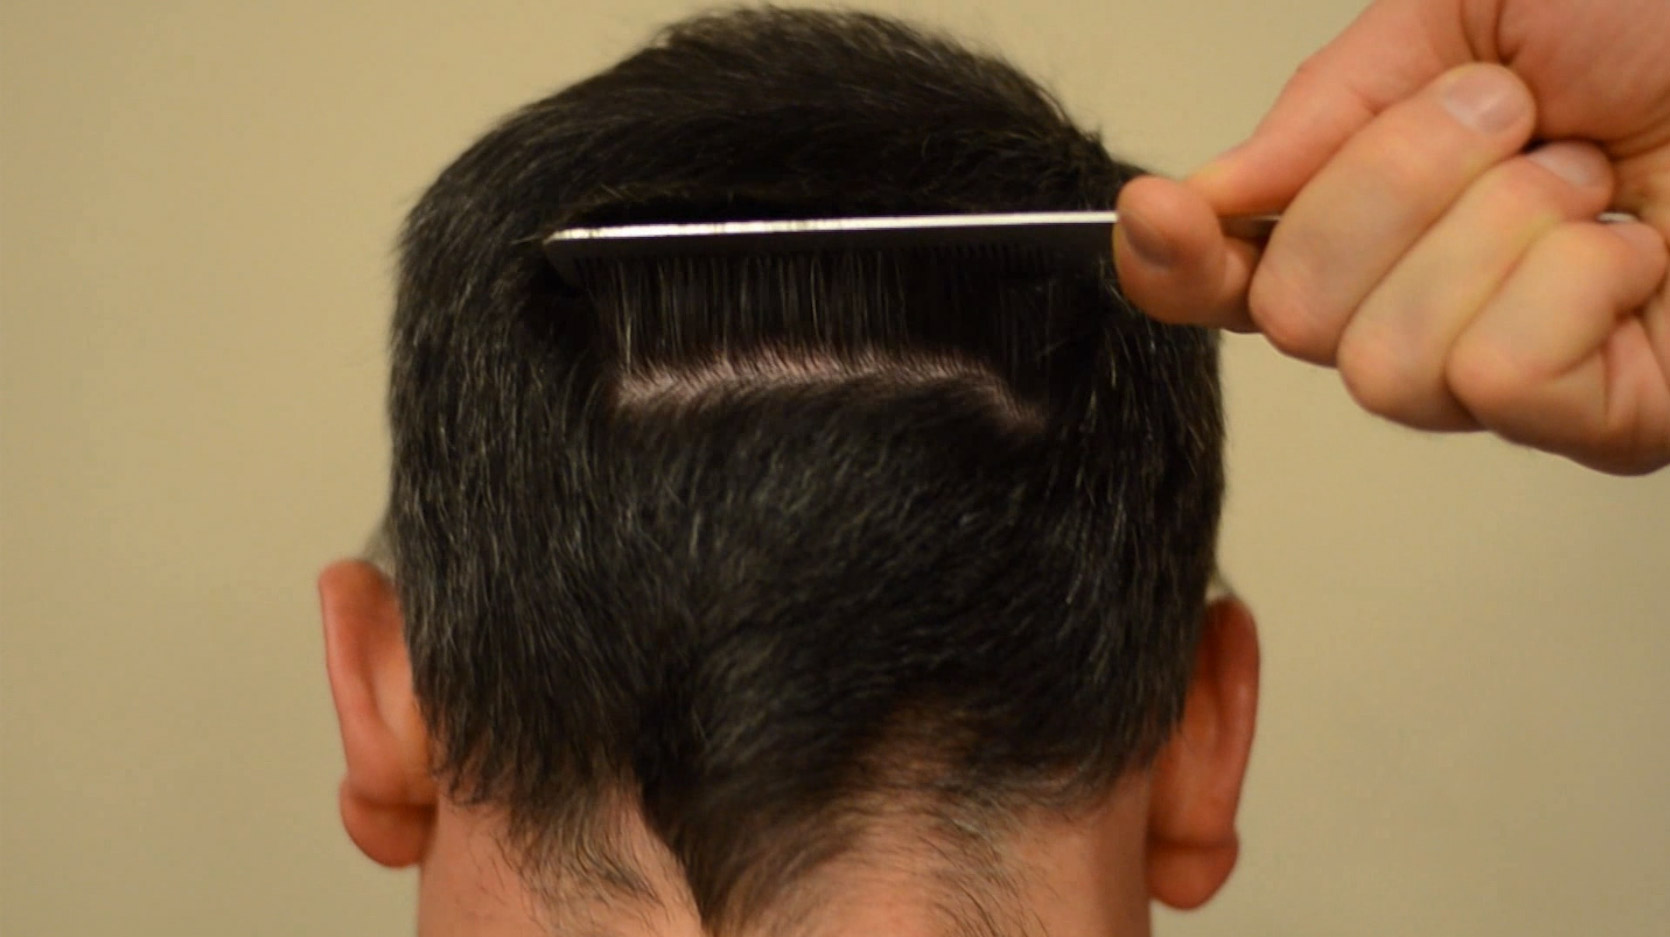 comb in back of the head showing hair transplant scar